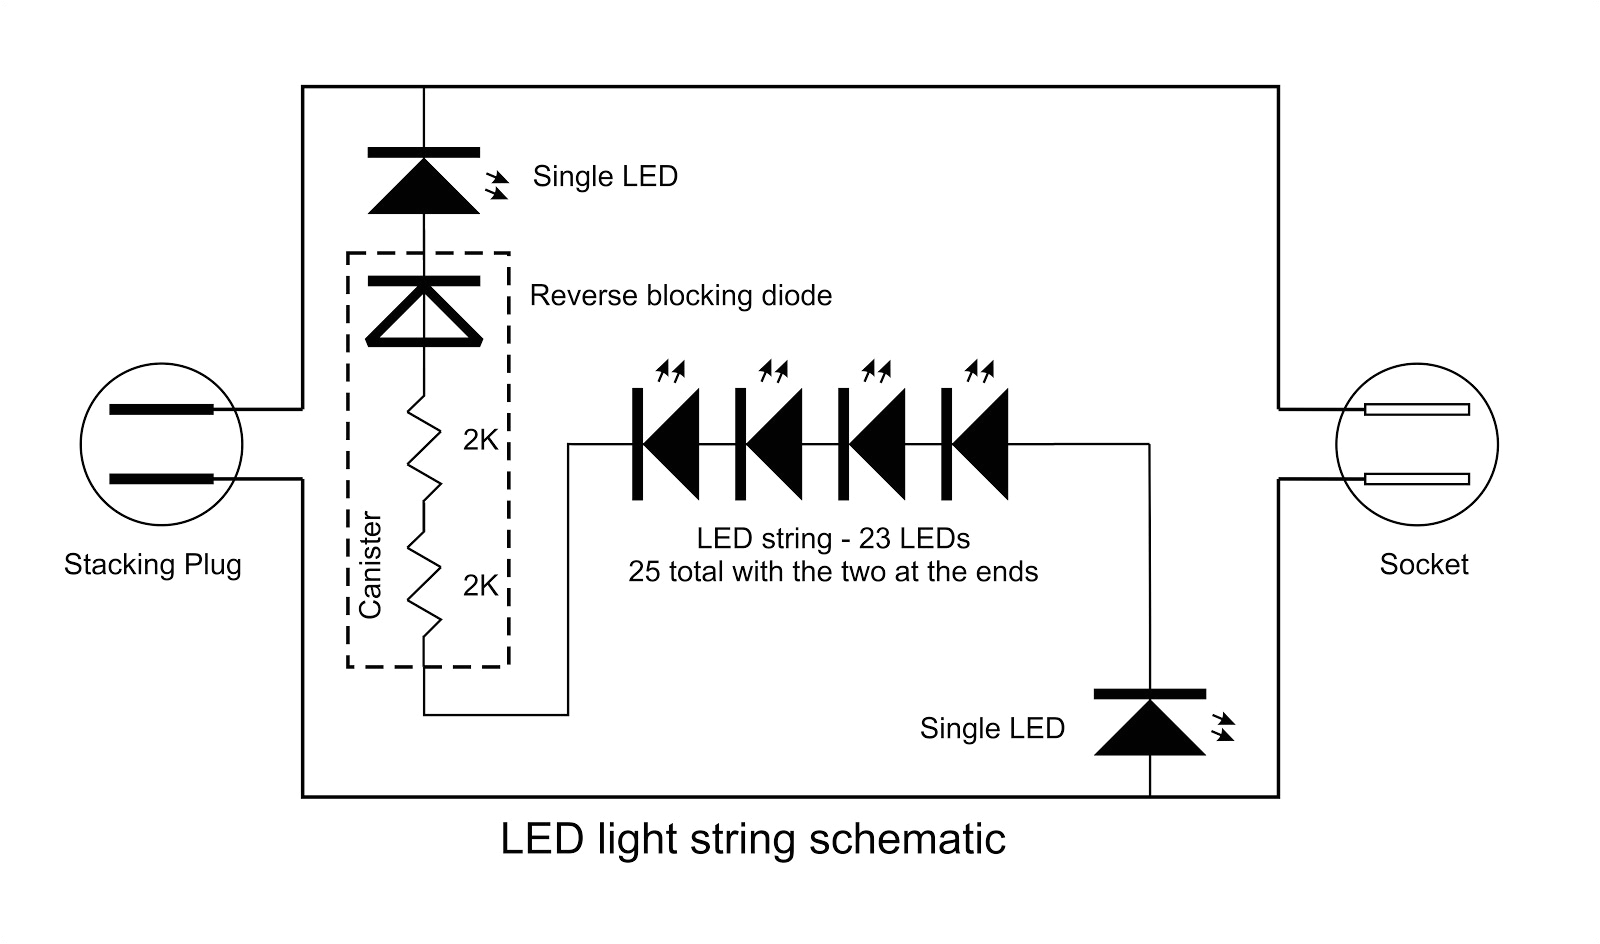 led light string schematic jpg